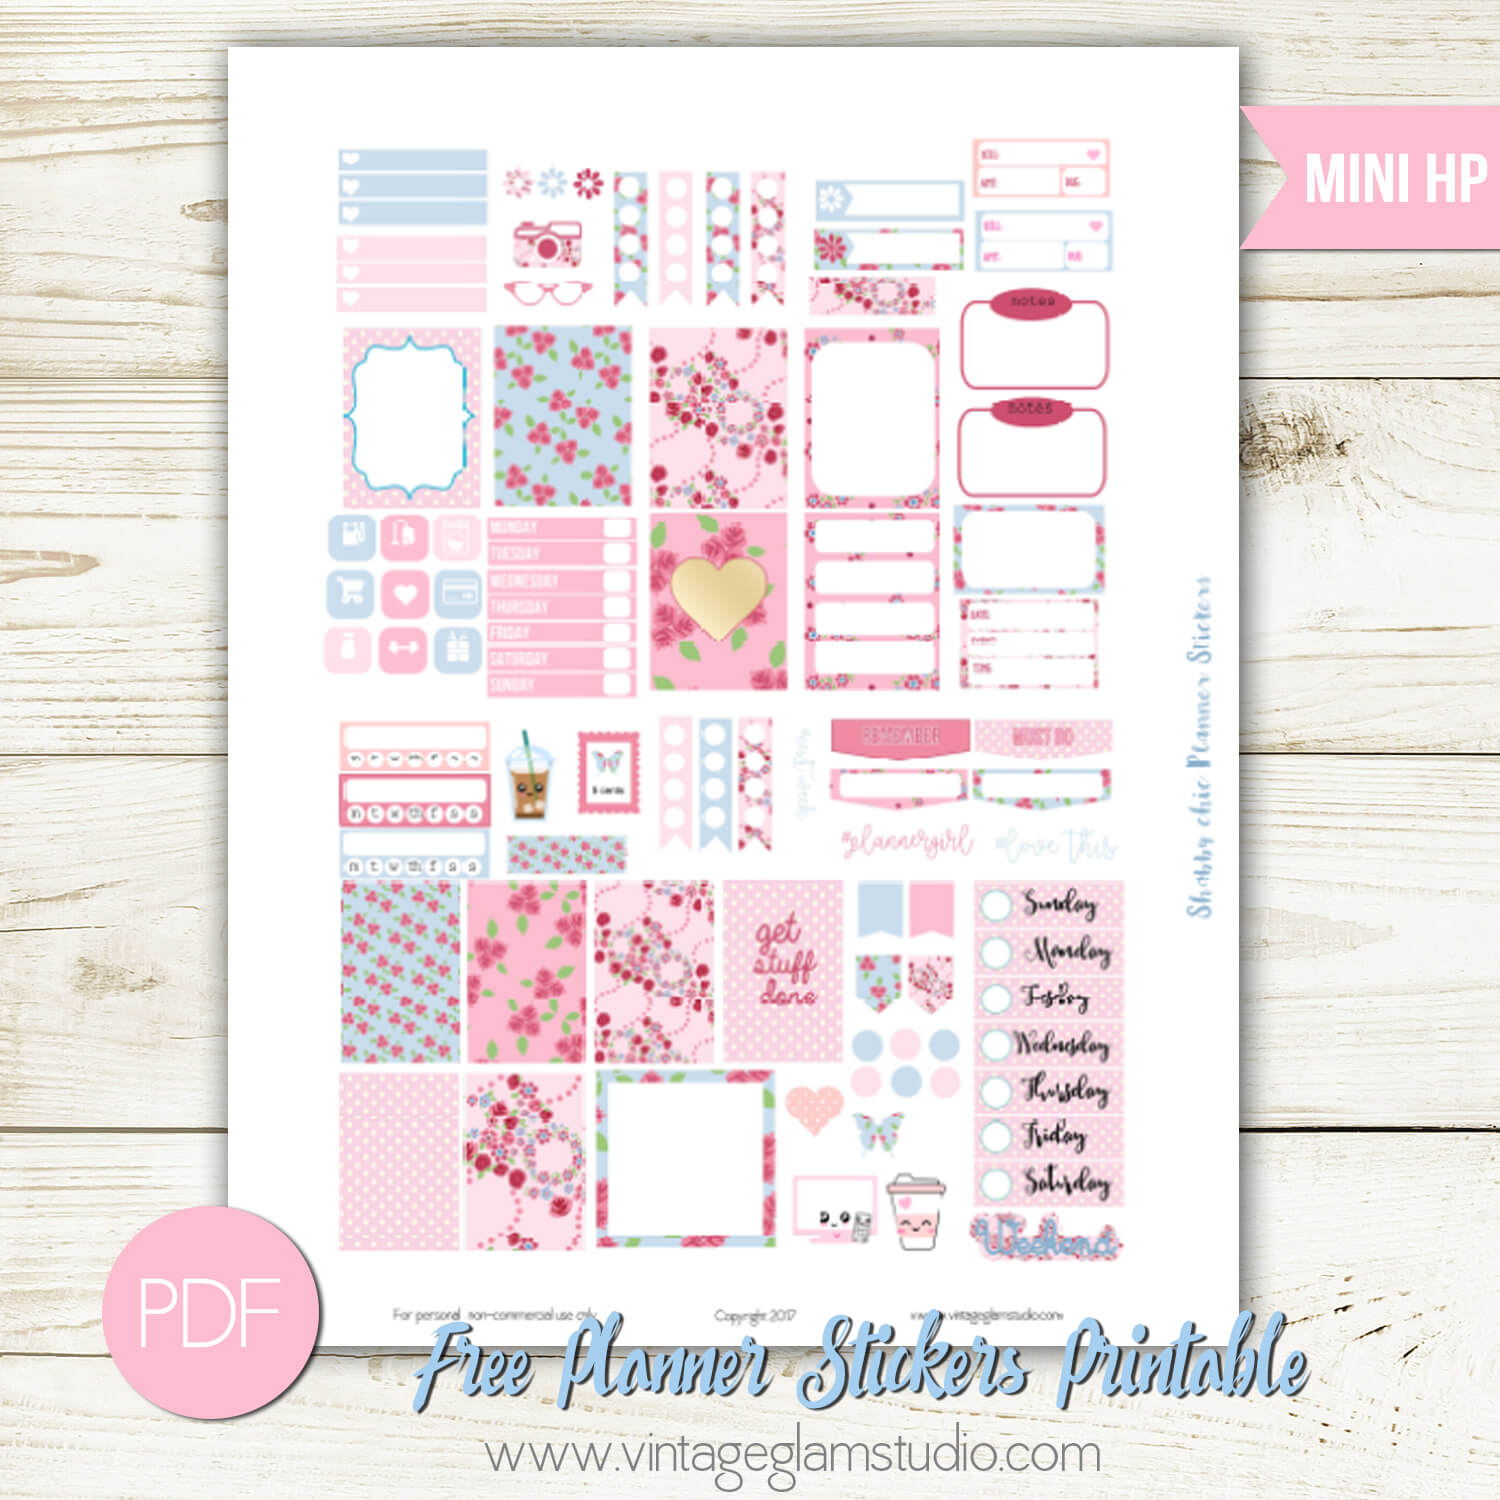 photograph regarding Free Mini Happy Planner Printable Inserts titled Mini Joyful Planner - Shabby Stylish Planner Stickers - Common